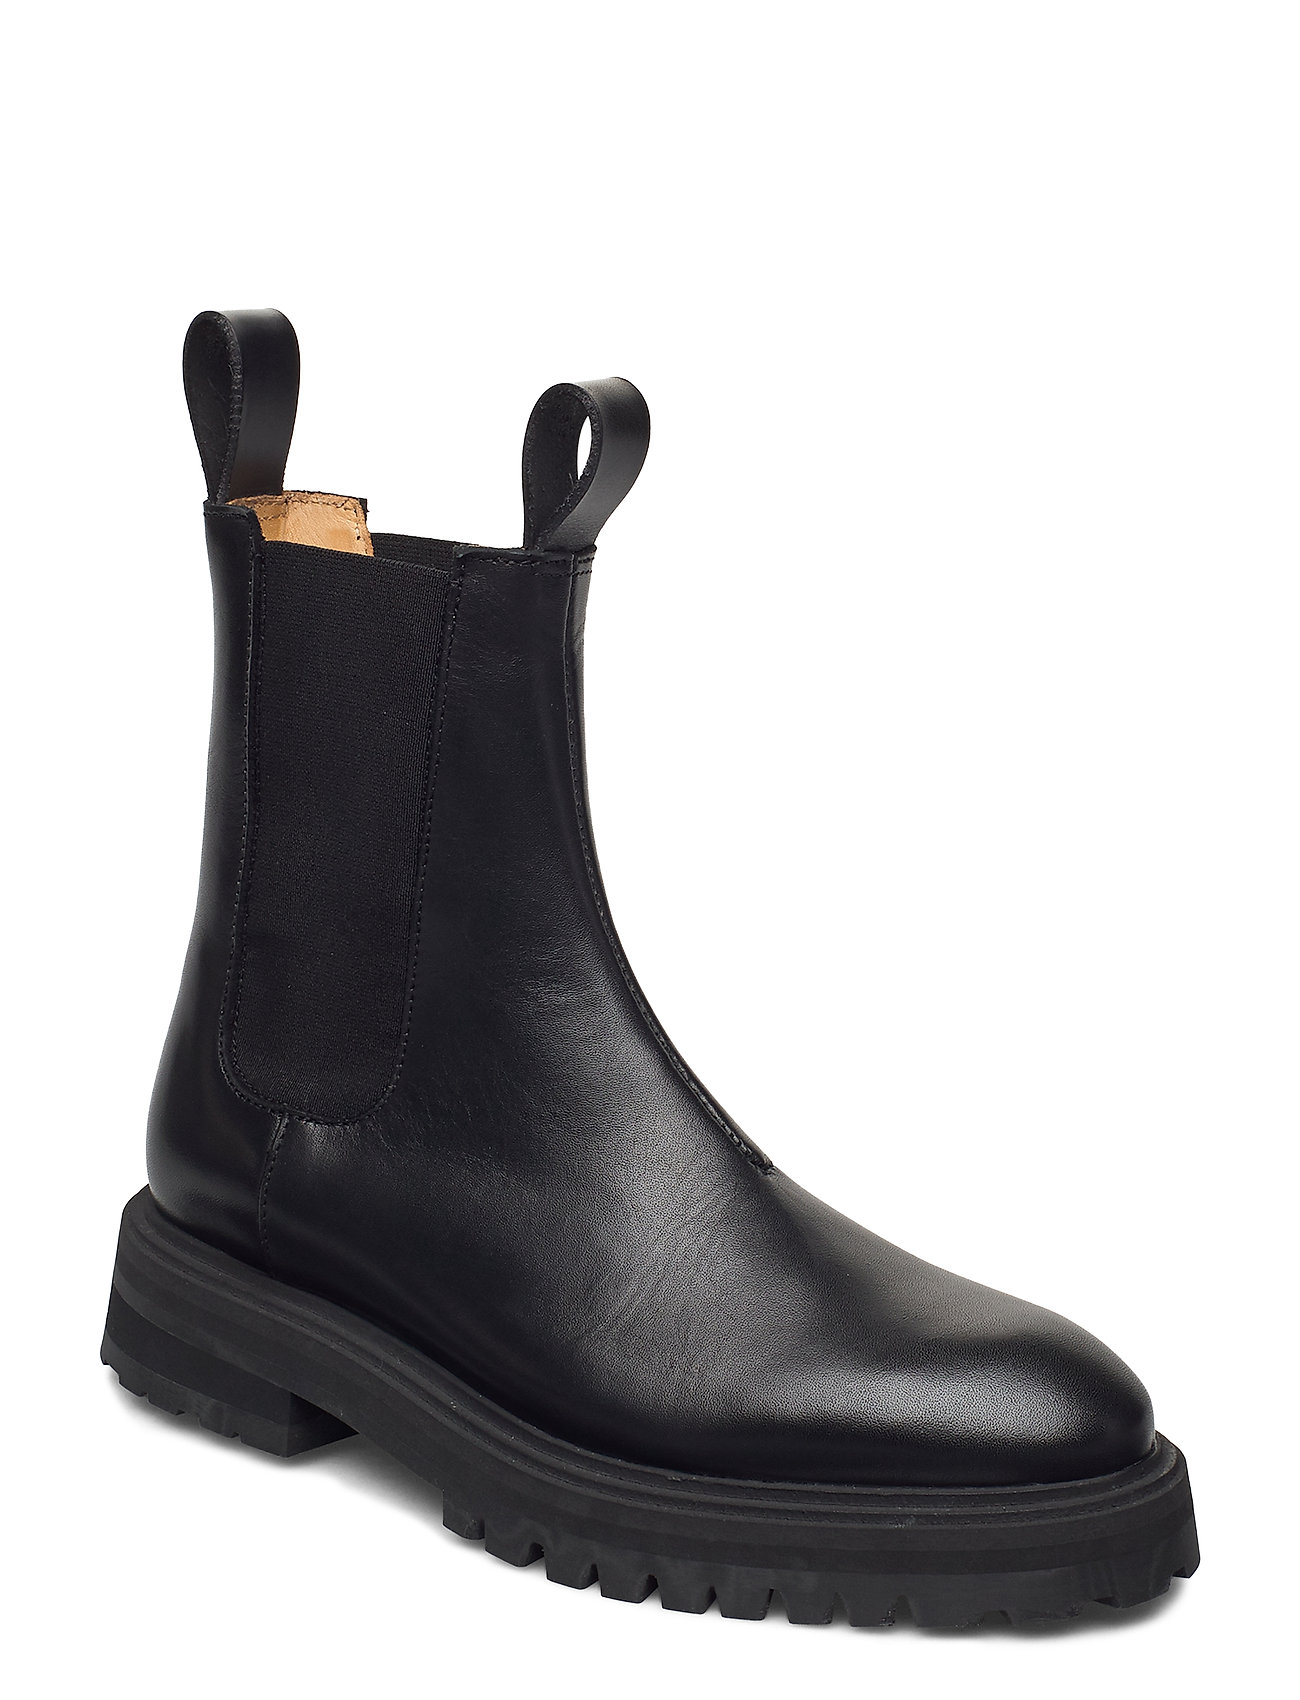 Image of Goal Digger Chelsea Boot Shoes Chelsea Boots Sort ANNY NORD (3446808801)